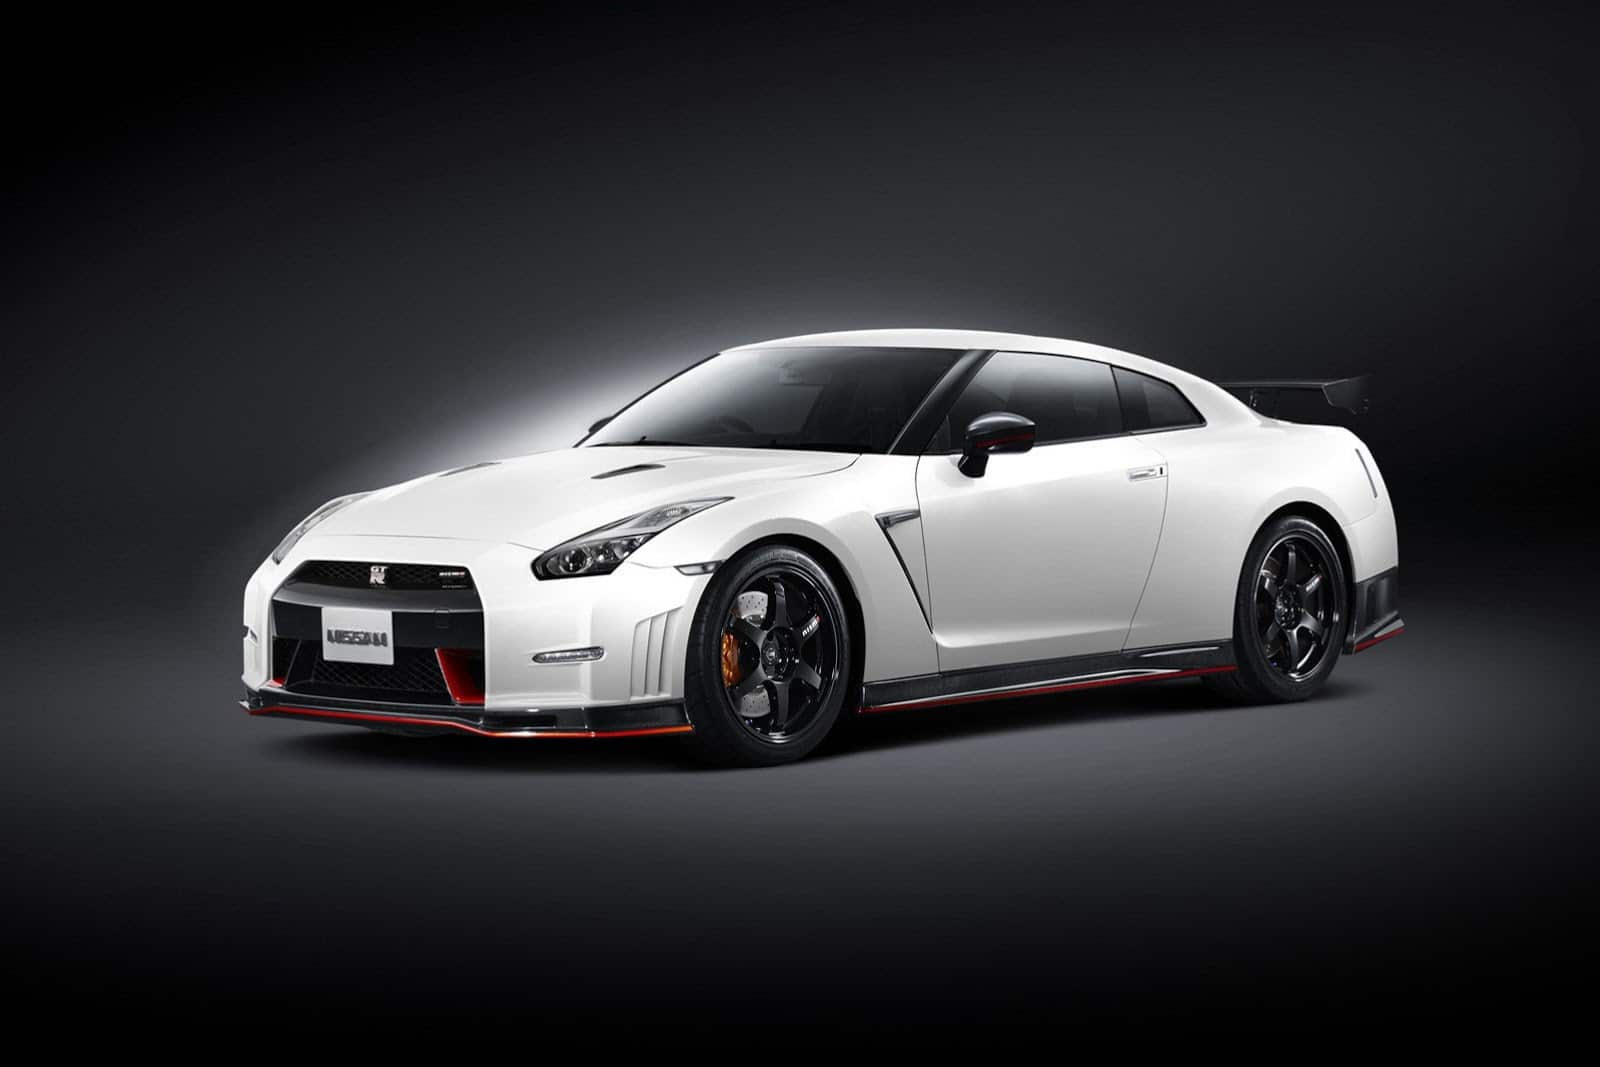 nissan gtr nismo 2014 un v6 3 8 l biturbo de 600 ch. Black Bedroom Furniture Sets. Home Design Ideas